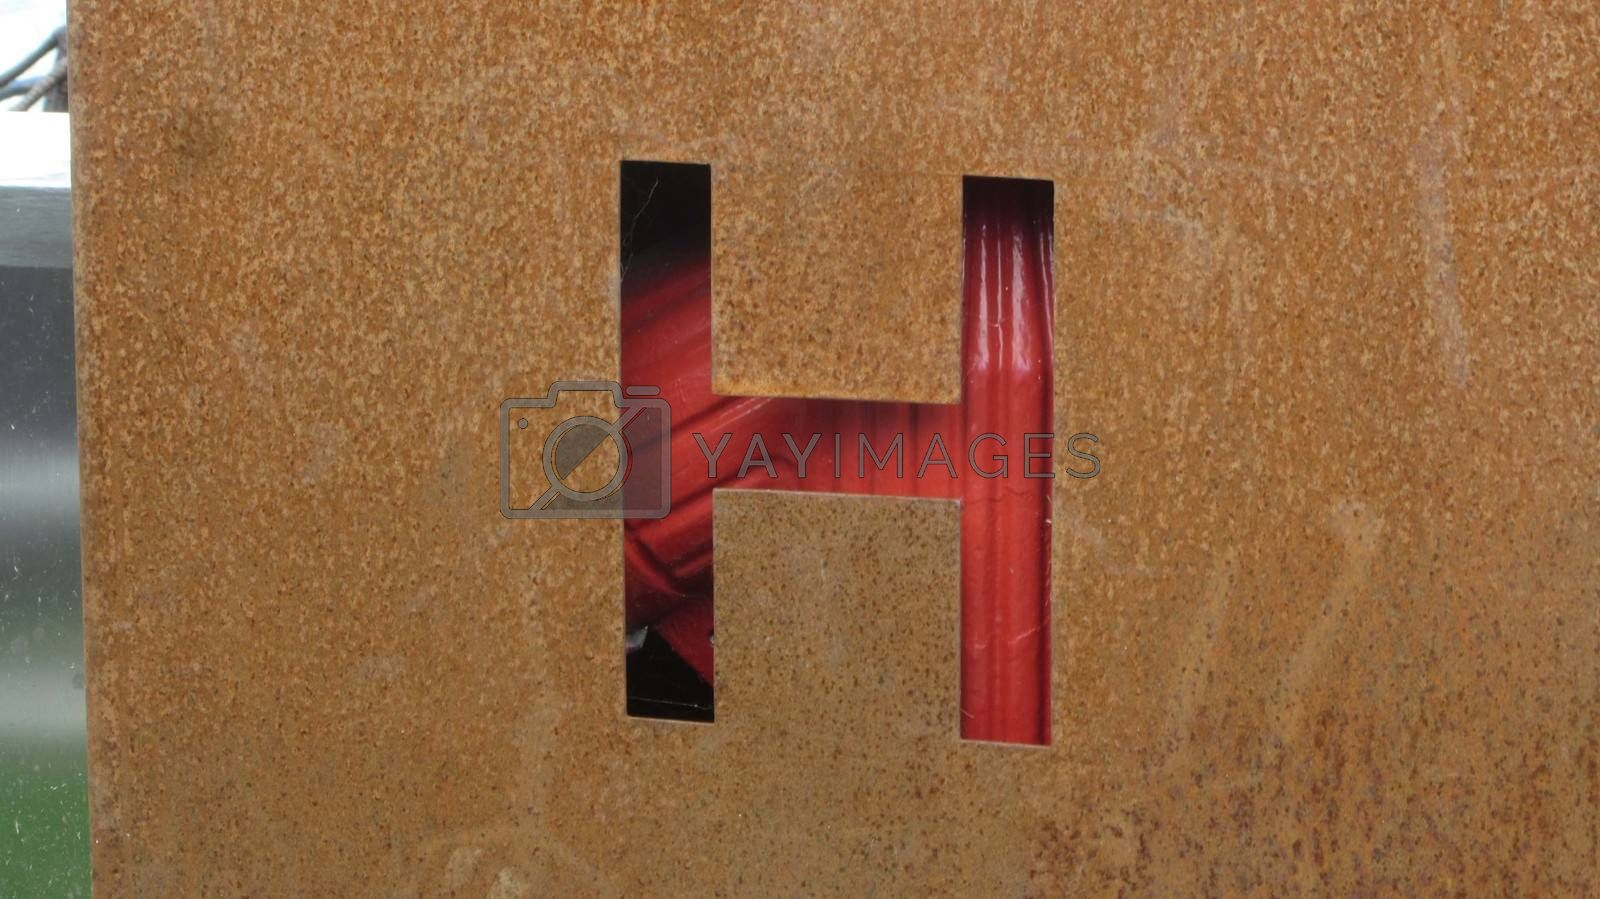 The letter 'H' cut in a rusty old metal plate